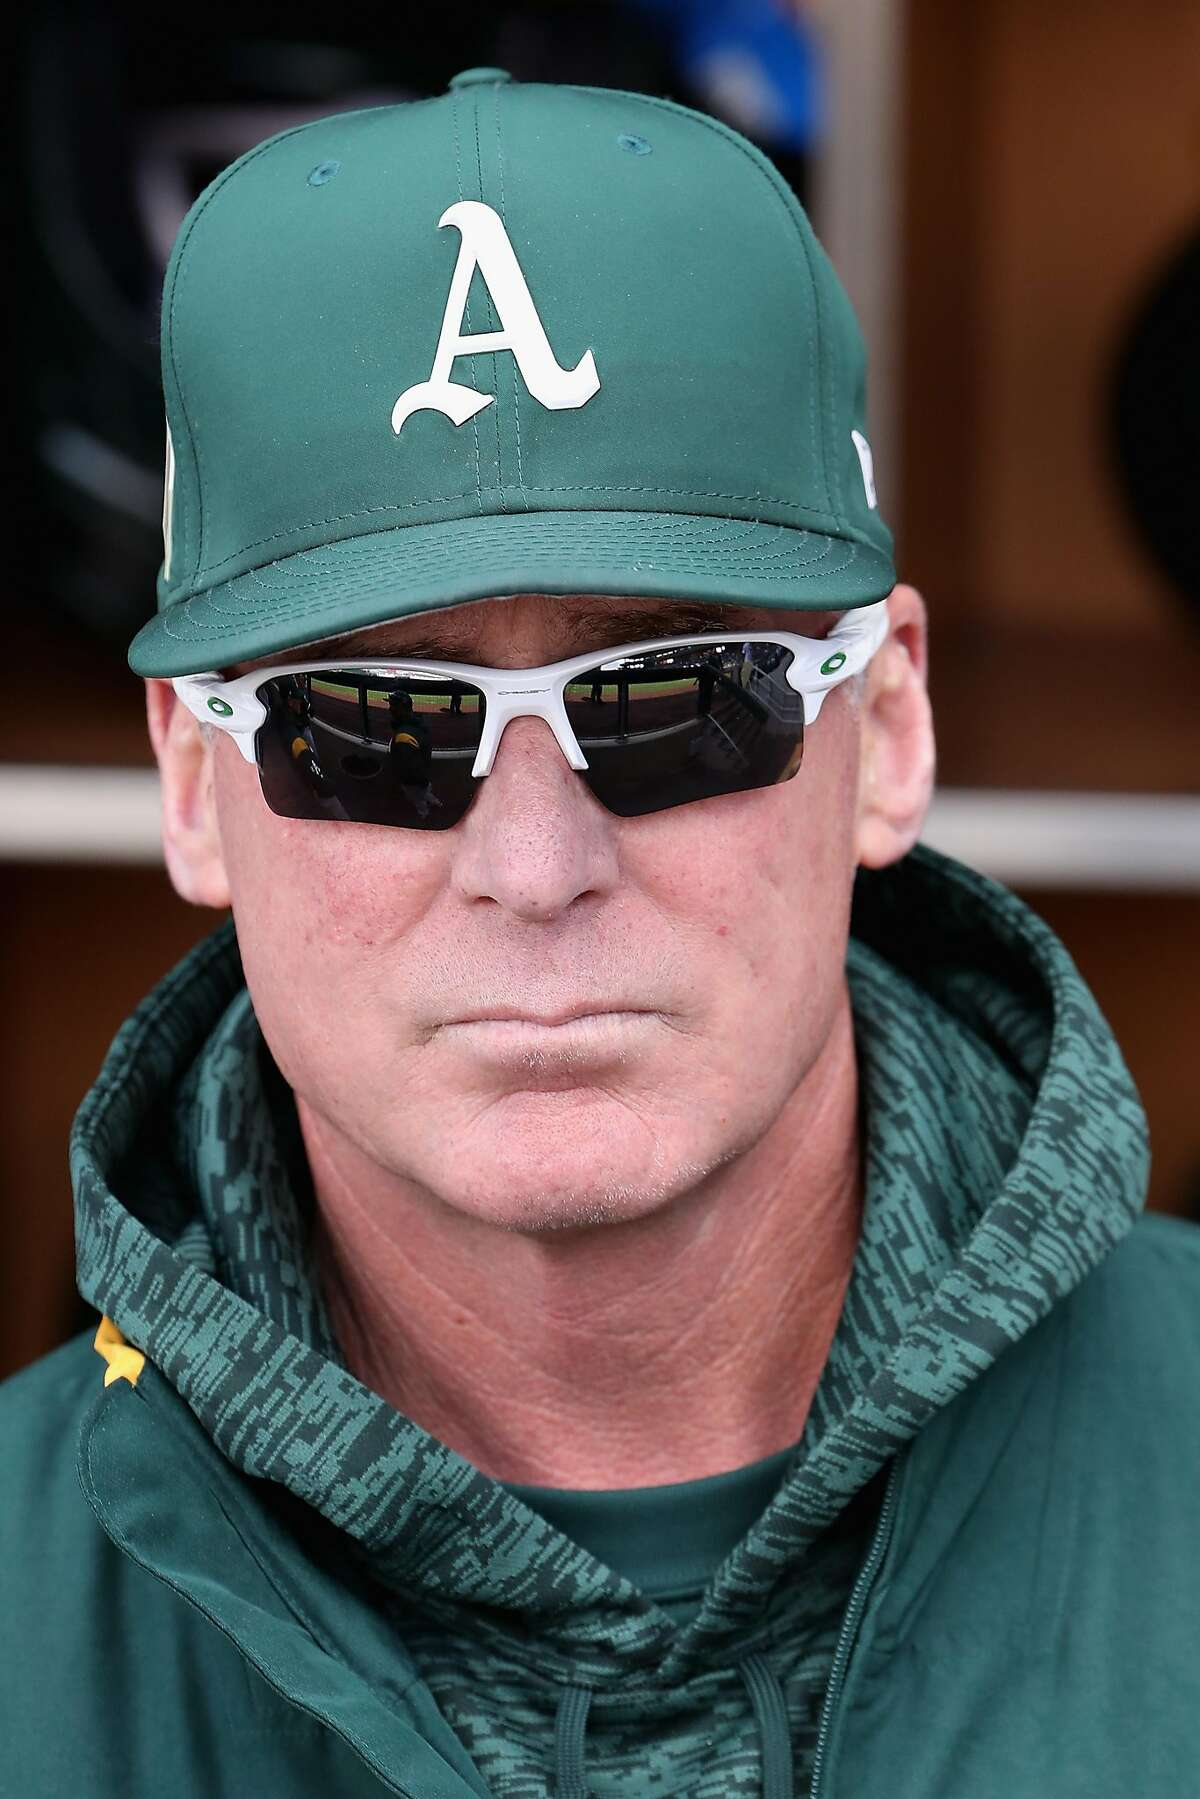 MESA, AZ - FEBRUARY 28: Manager Bob Melvin #6 of the Oakland Athletics watches from the dugout before the spring training game against the Chicago Cubs at Sloan Park on February 28, 2018 in Mesa, Arizona. (Photo by Christian Petersen/Getty Images)